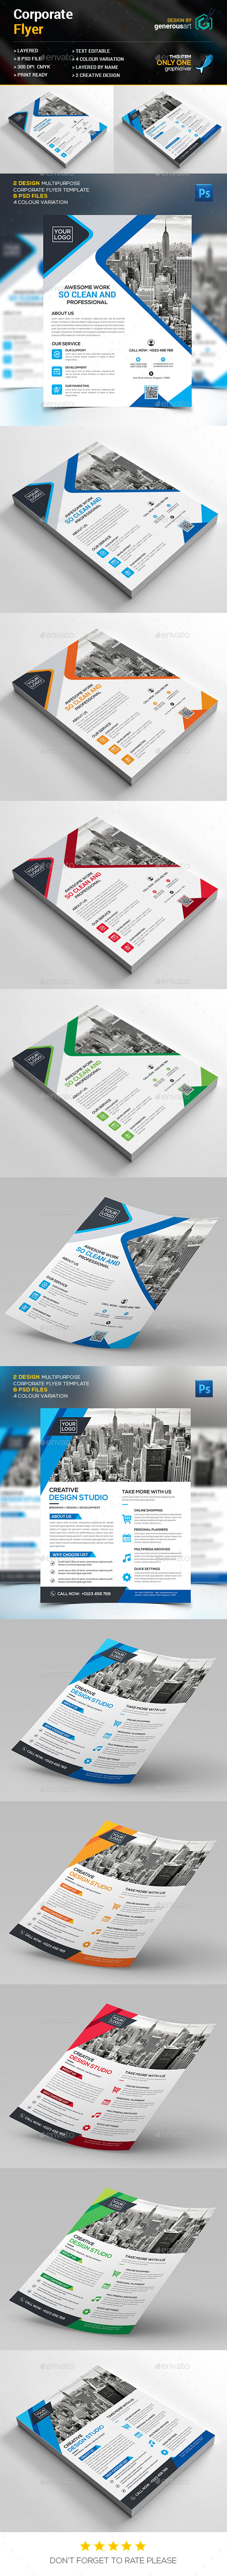 Mega Corporate Flyer - Corporate Flyers